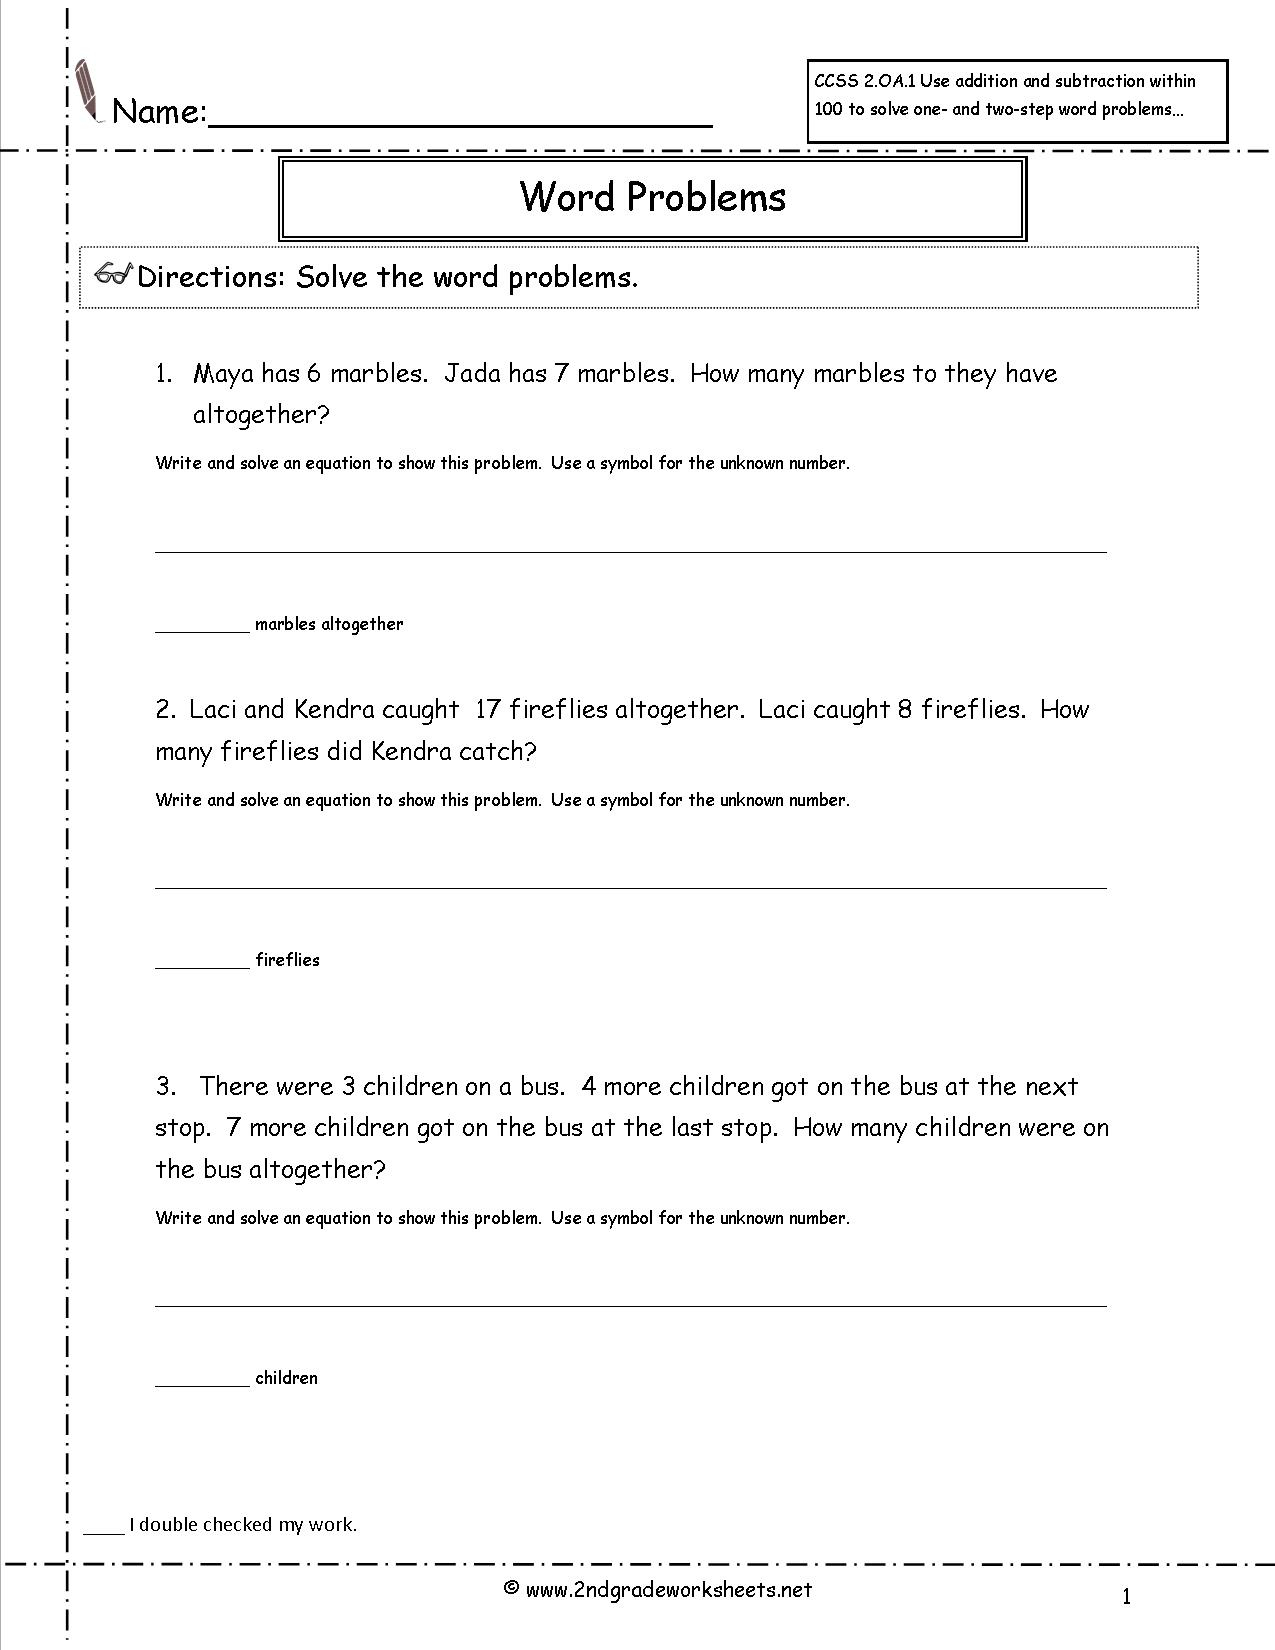 2Nd Grade Math Common Core State Standards Worksheets | Grade 2 Math Word Problems Printable Worksheets